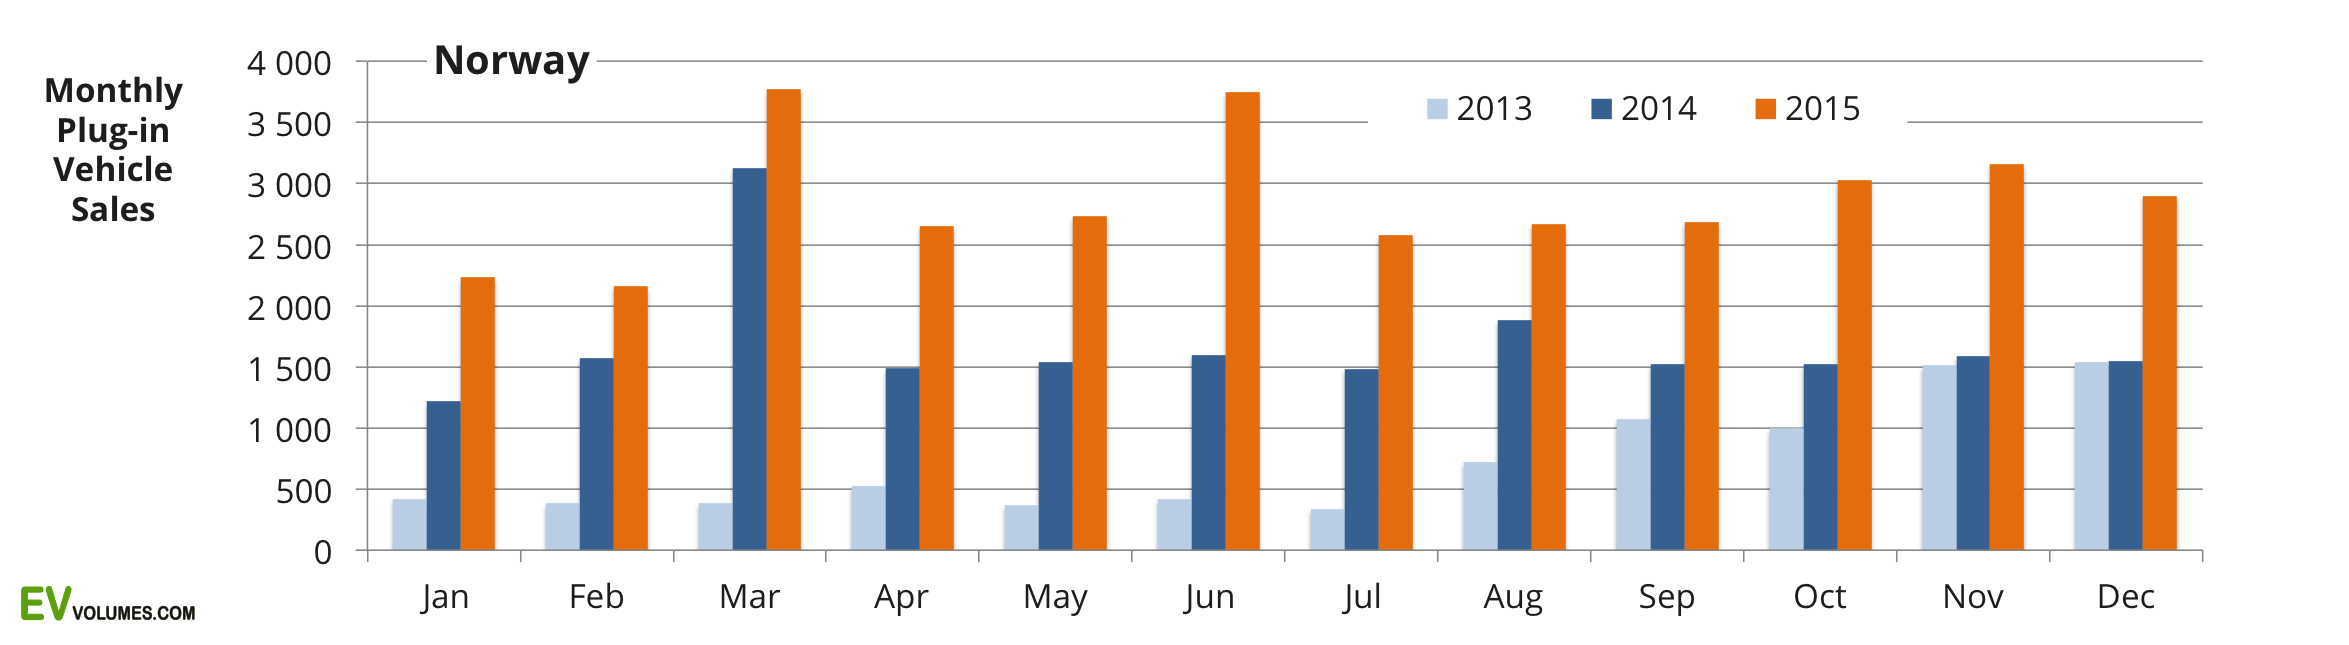 first Norway Plug In Vehicle Sales Q4 and Full Year 2015 image